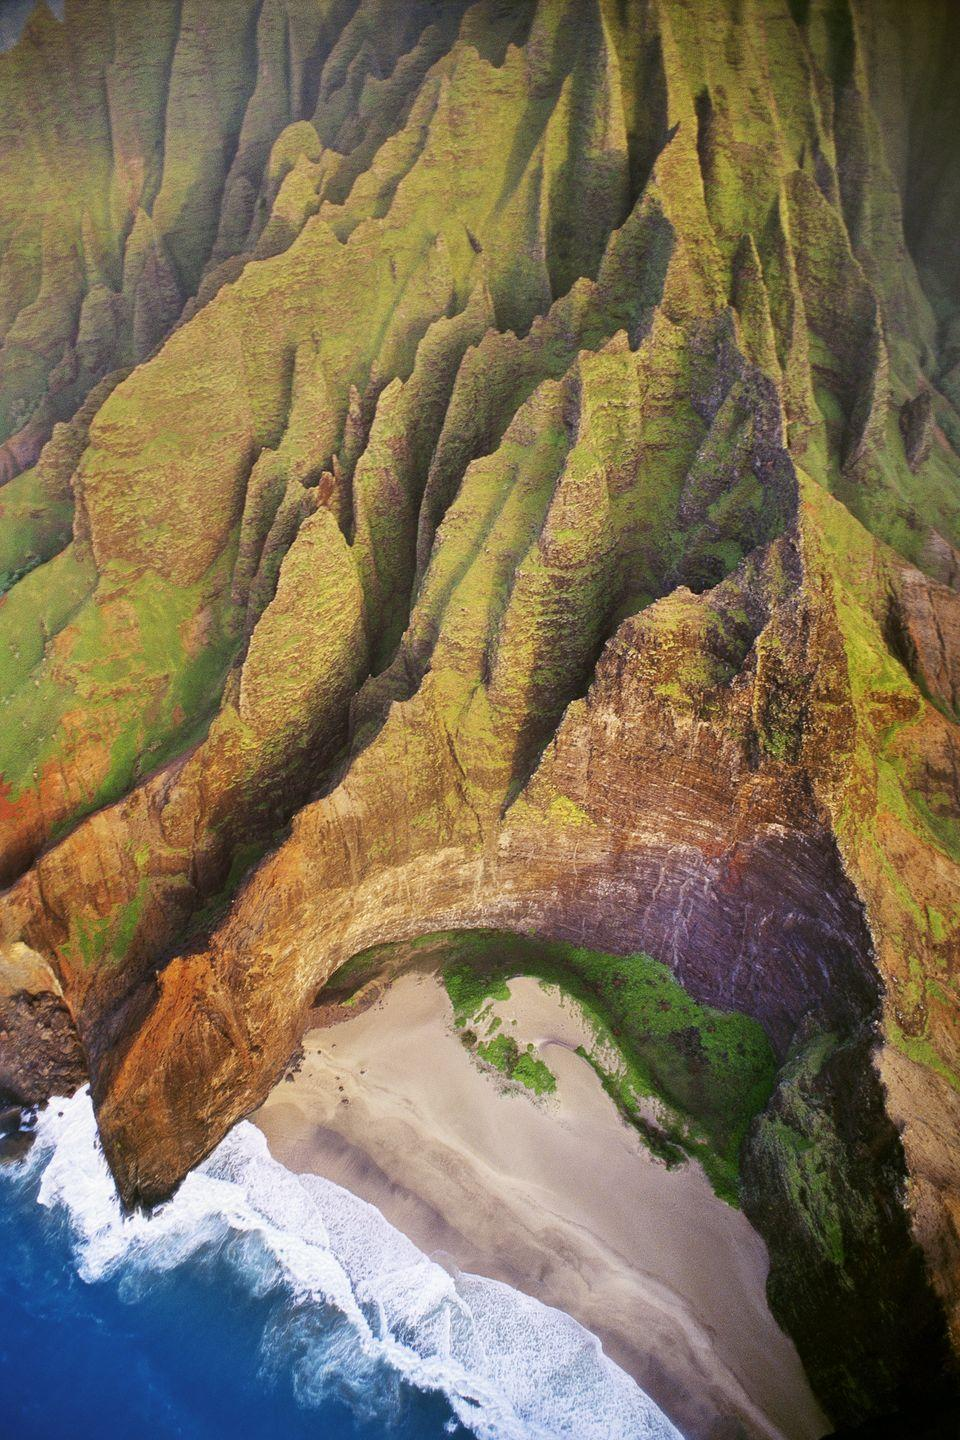 "<p><strong>Where: </strong><a href=""https://go.redirectingat.com?id=74968X1596630&url=https%3A%2F%2Fwww.tripadvisor.com%2FTourism-g29218-Kauai_Hawaii-Vacations.html&sref=https%3A%2F%2Fwww.prevention.com%2Flife%2Fg26815809%2Fmost-beautiful-places-in-america%2F"" rel=""nofollow noopener"" target=""_blank"" data-ylk=""slk:Honopu Beach, Hawaii"" class=""link rapid-noclick-resp"">Honopu Beach, Hawaii</a></p><p><strong>Why We Love It: </strong>While there are too many <a href=""https://www.countryliving.com/life/travel/g4033/best-beaches-in-usa/"" rel=""nofollow noopener"" target=""_blank"" data-ylk=""slk:beautiful beaches"" class=""link rapid-noclick-resp"">beautiful beaches</a> in Hawaii to pick just one, the remoteness of this stretch of sand on Kauai's Na Pali Coast make it one of our favorites.</p>"